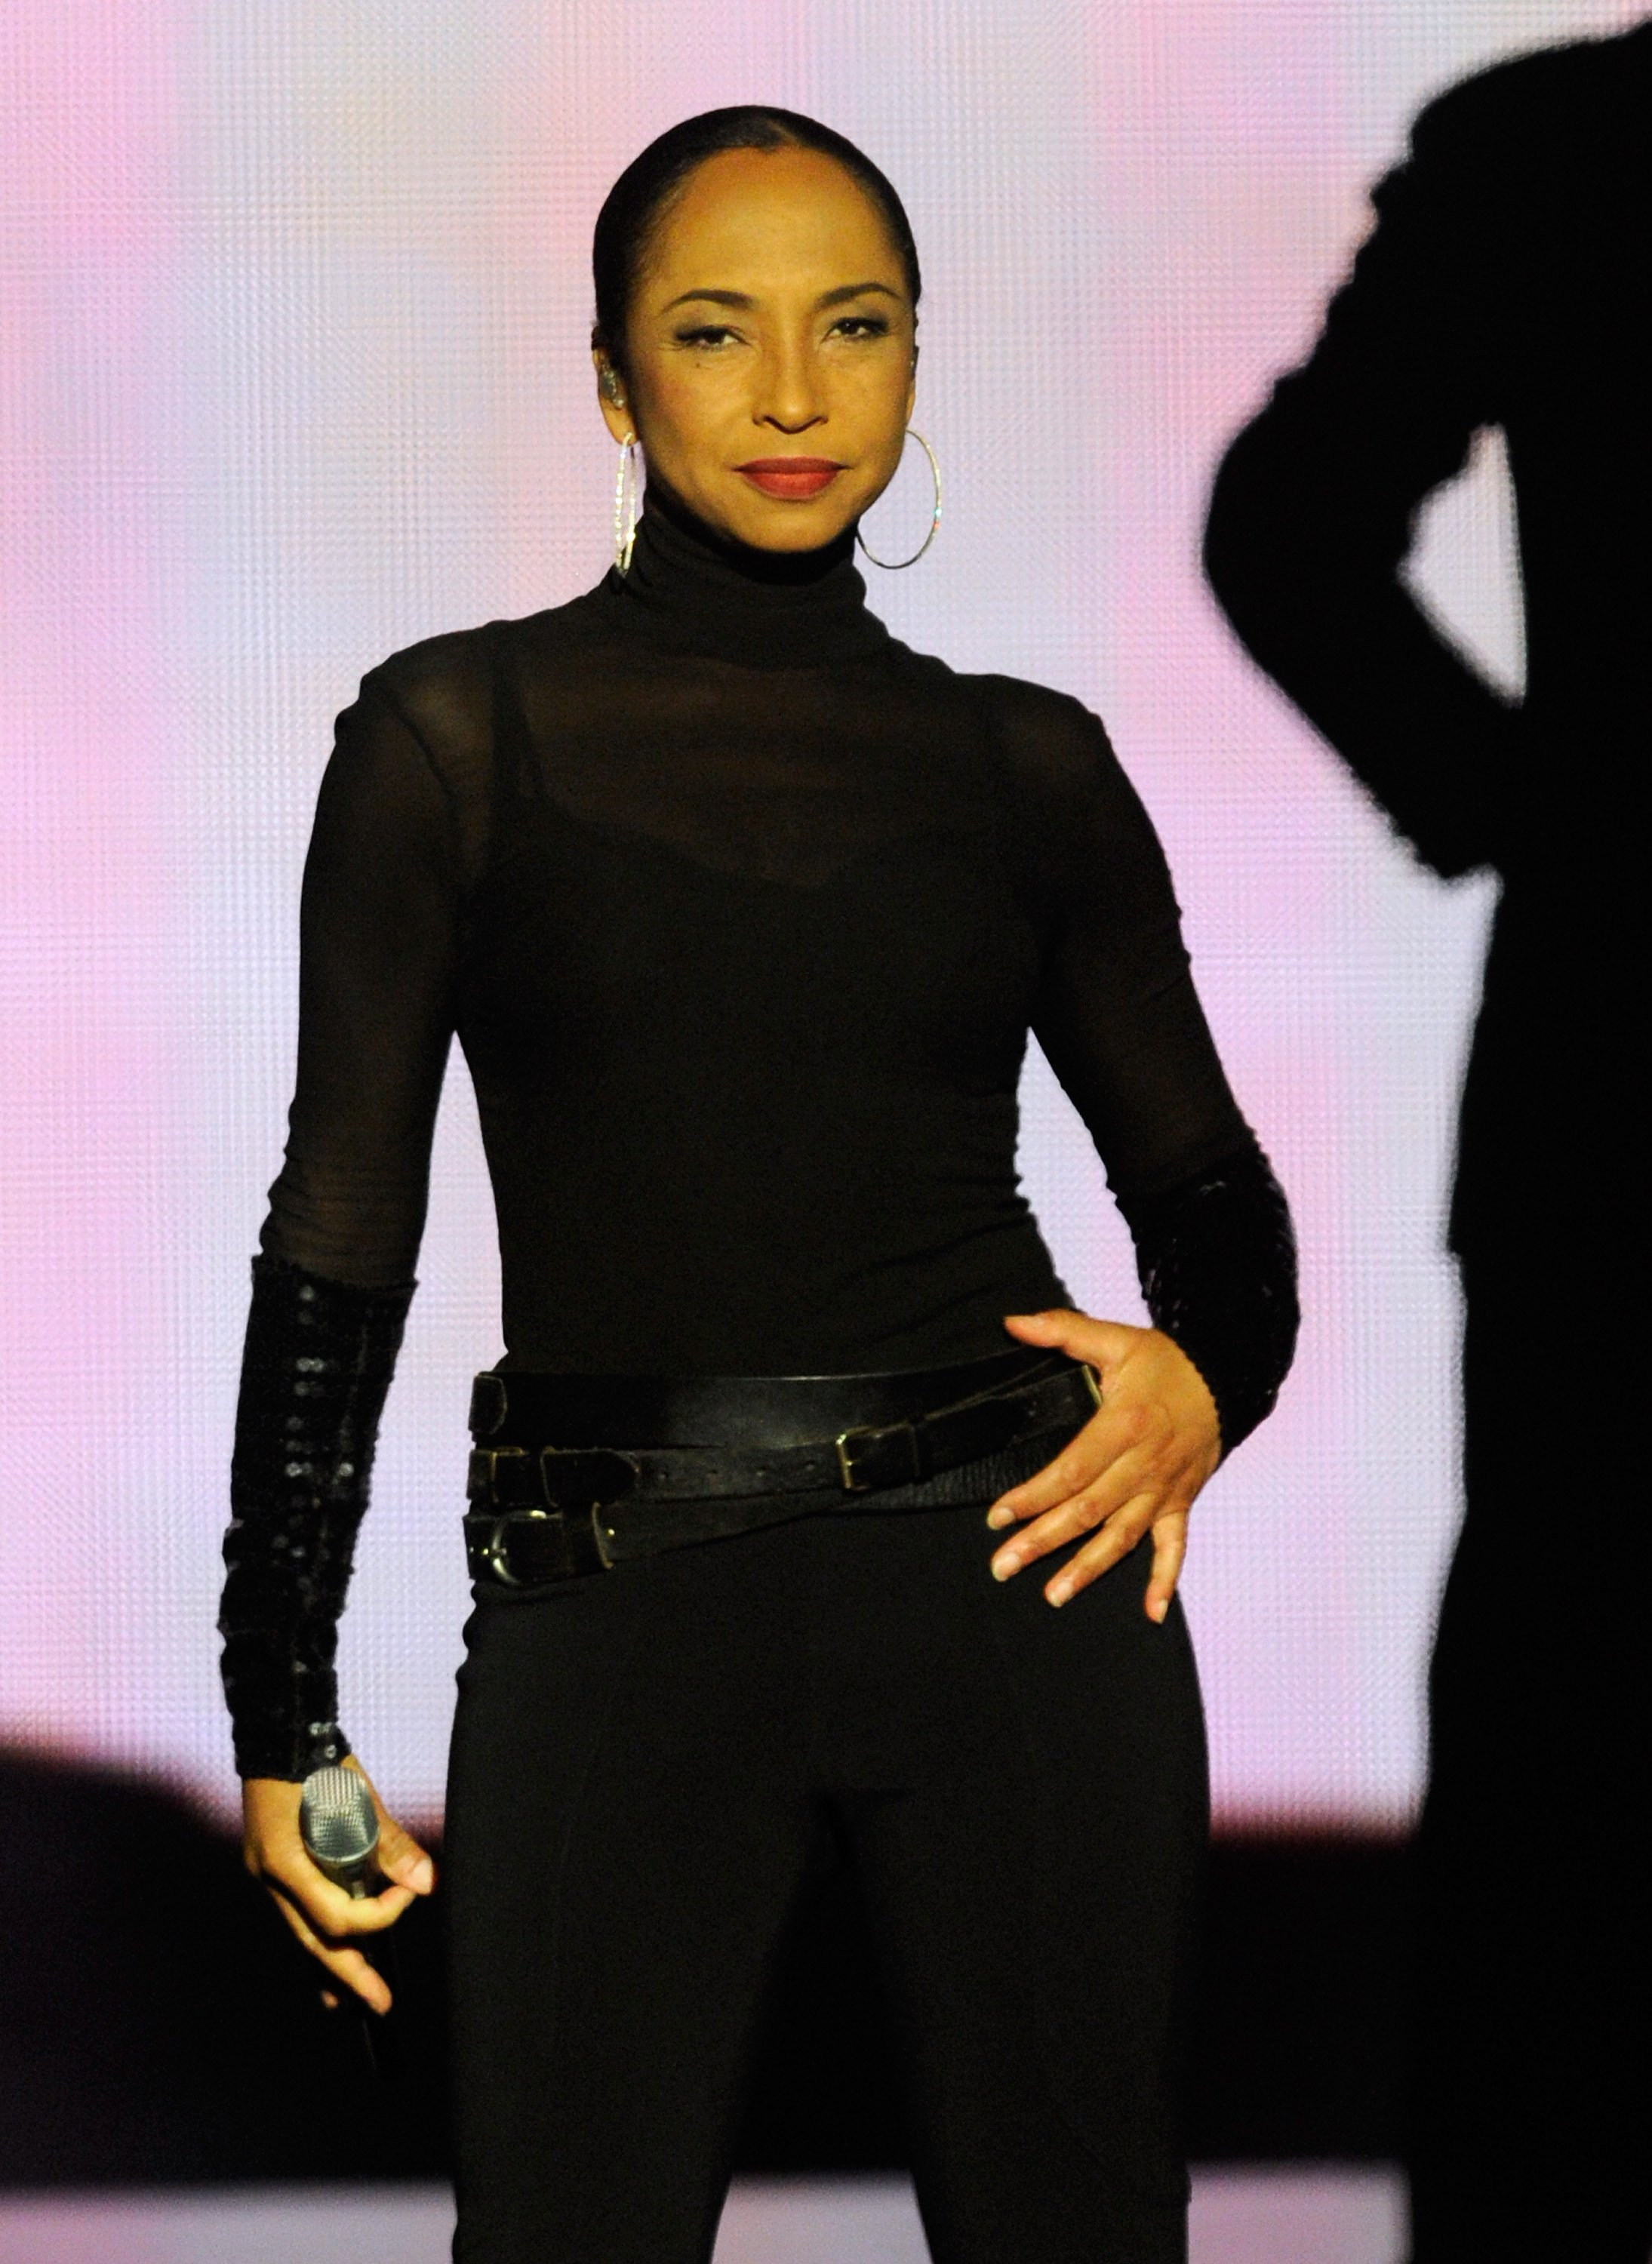 Sade performs at the MGM Grand Garden Arena on September 3, 2011 in Las Vegas, Nevada. I Image: Getty Images.